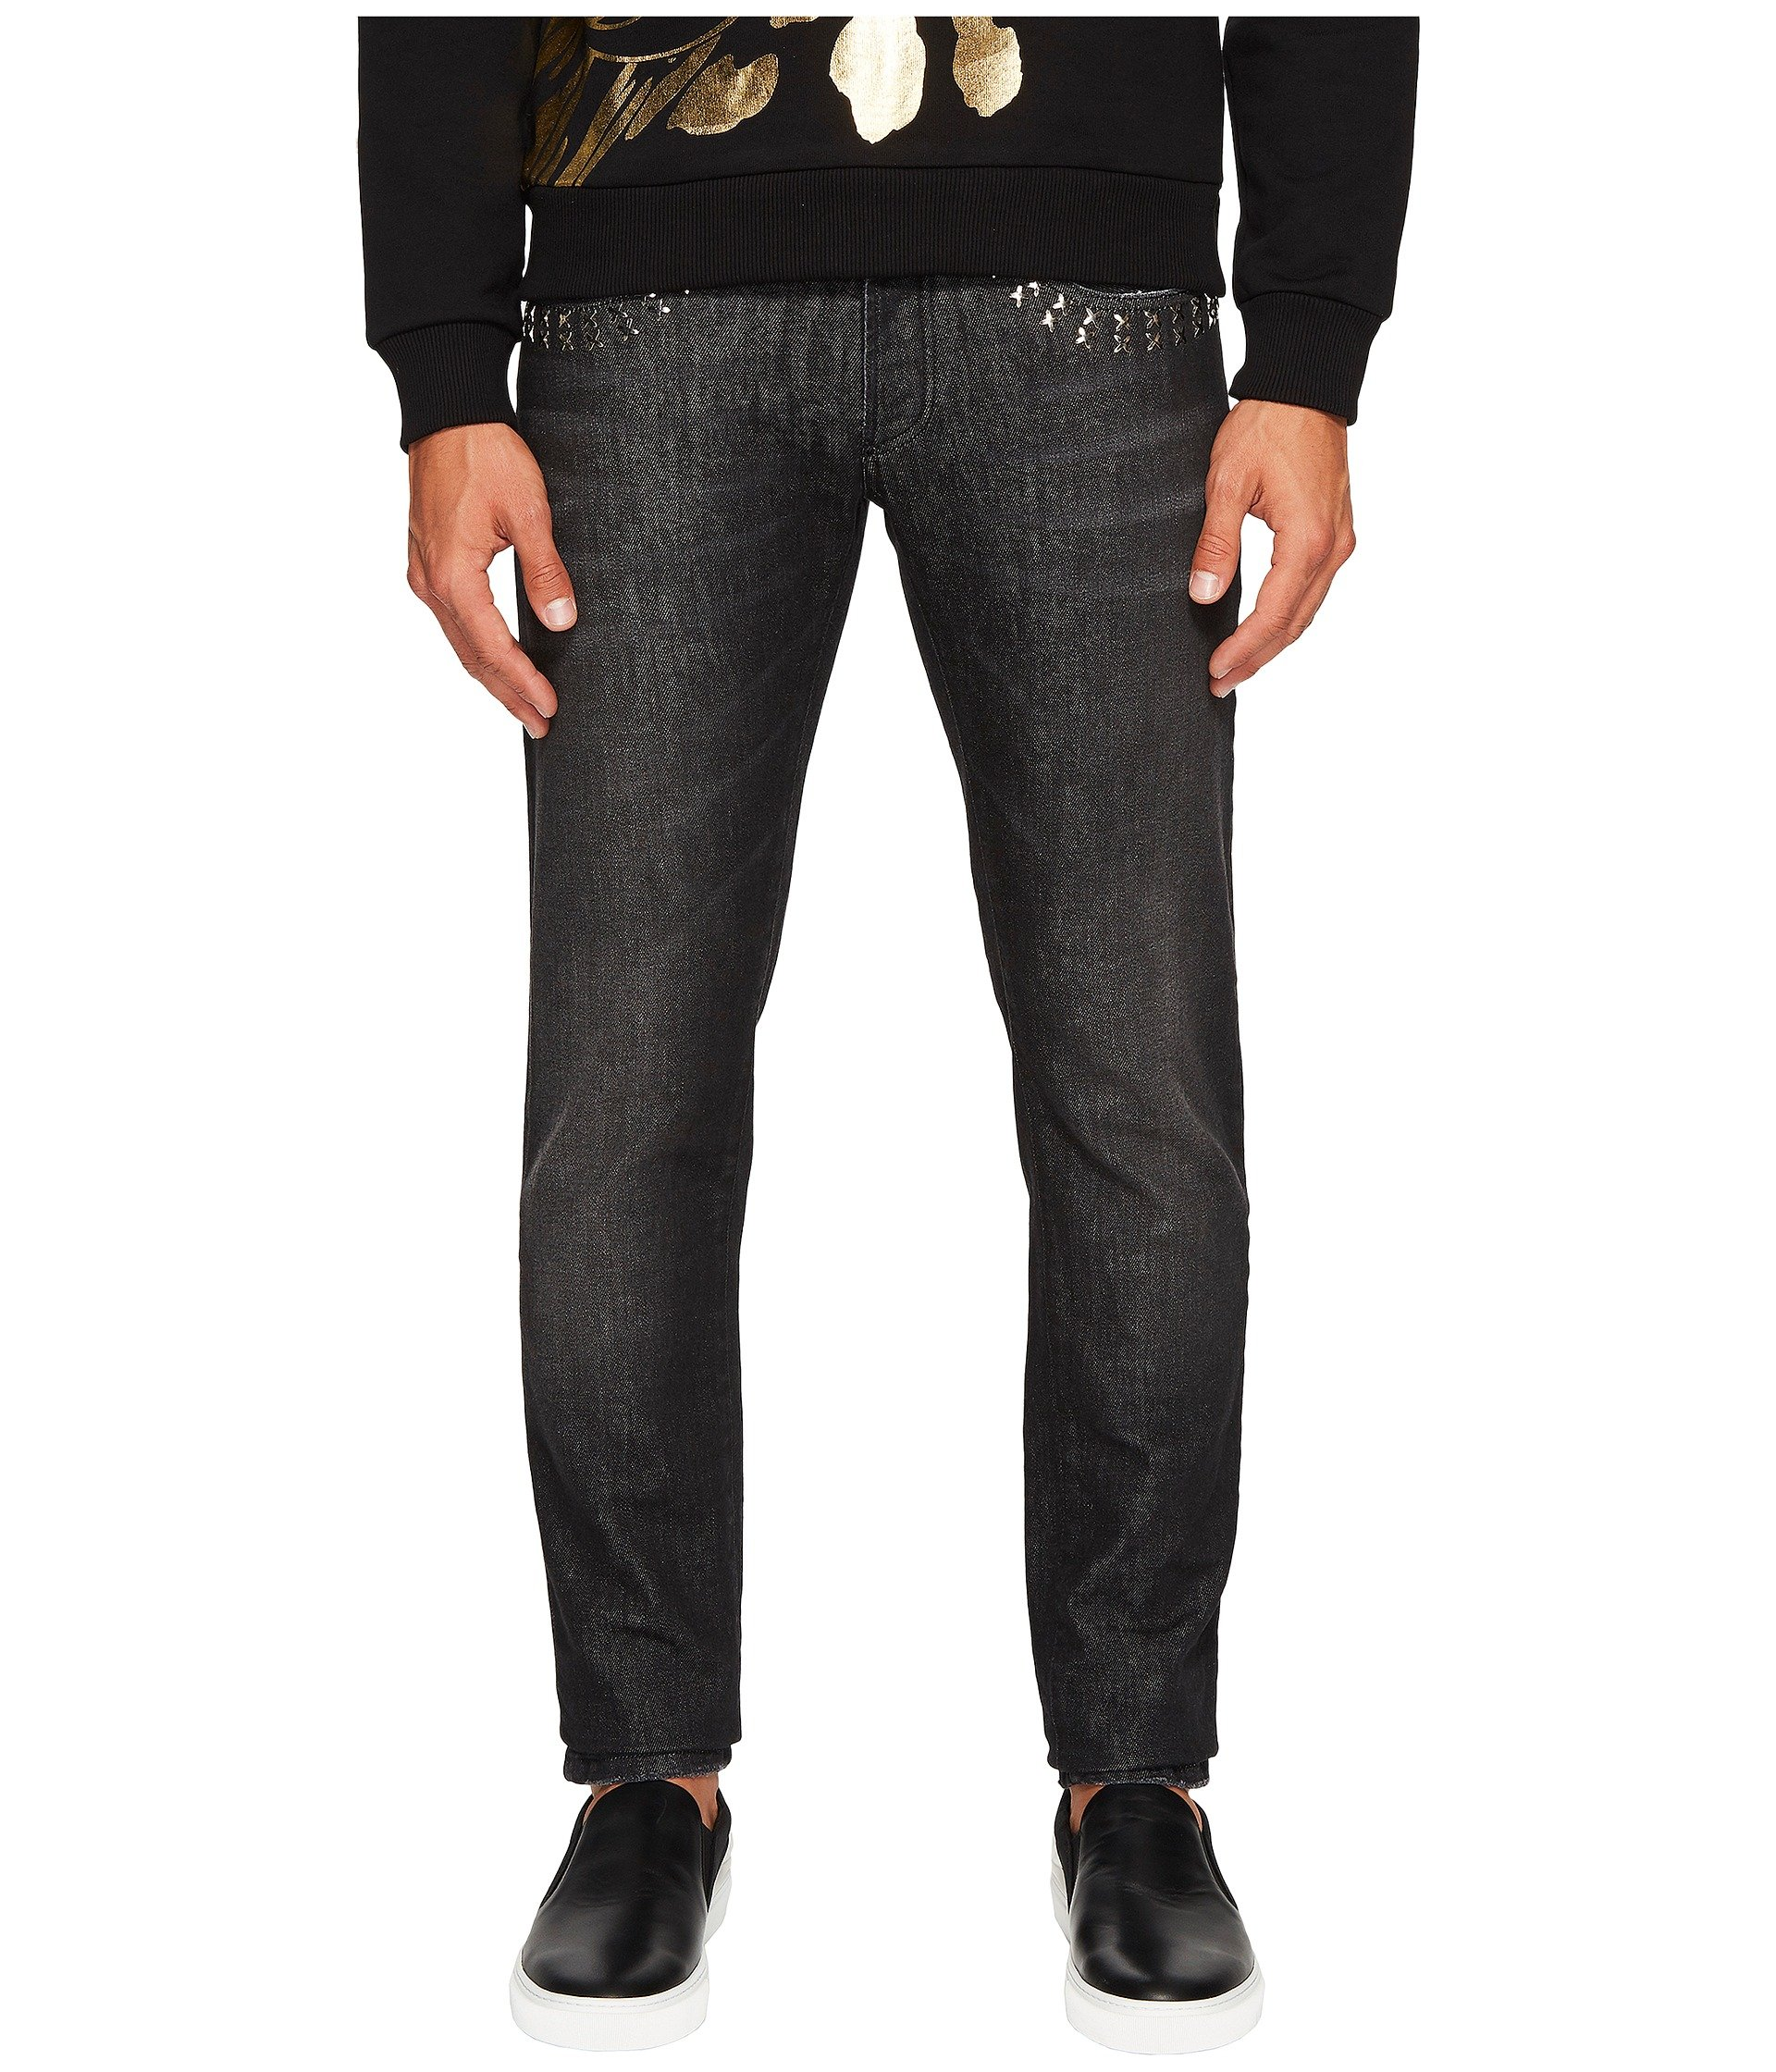 Versace X Applique Jeans in Washed Black, WASHED BLACK